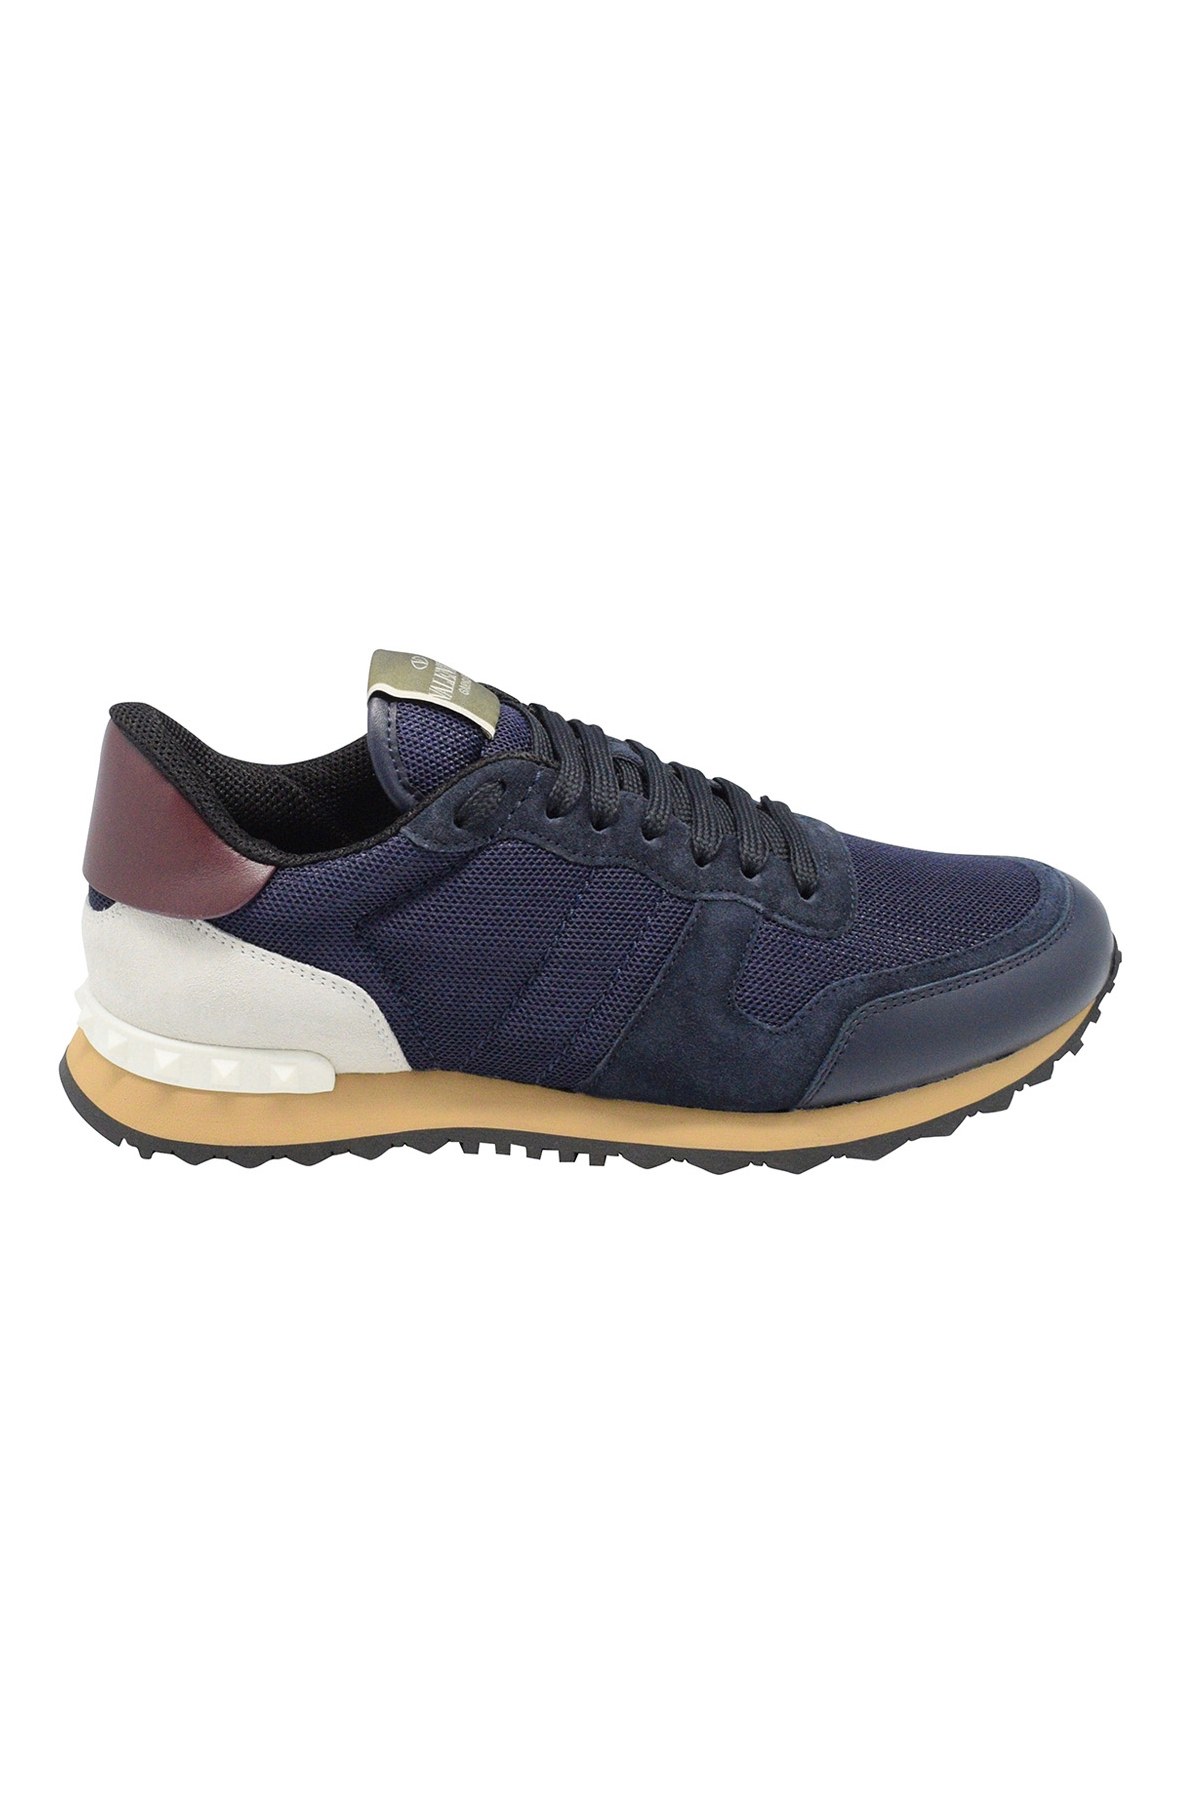 Valentino Rockrunner sneakers in blue and white fabric and nappa